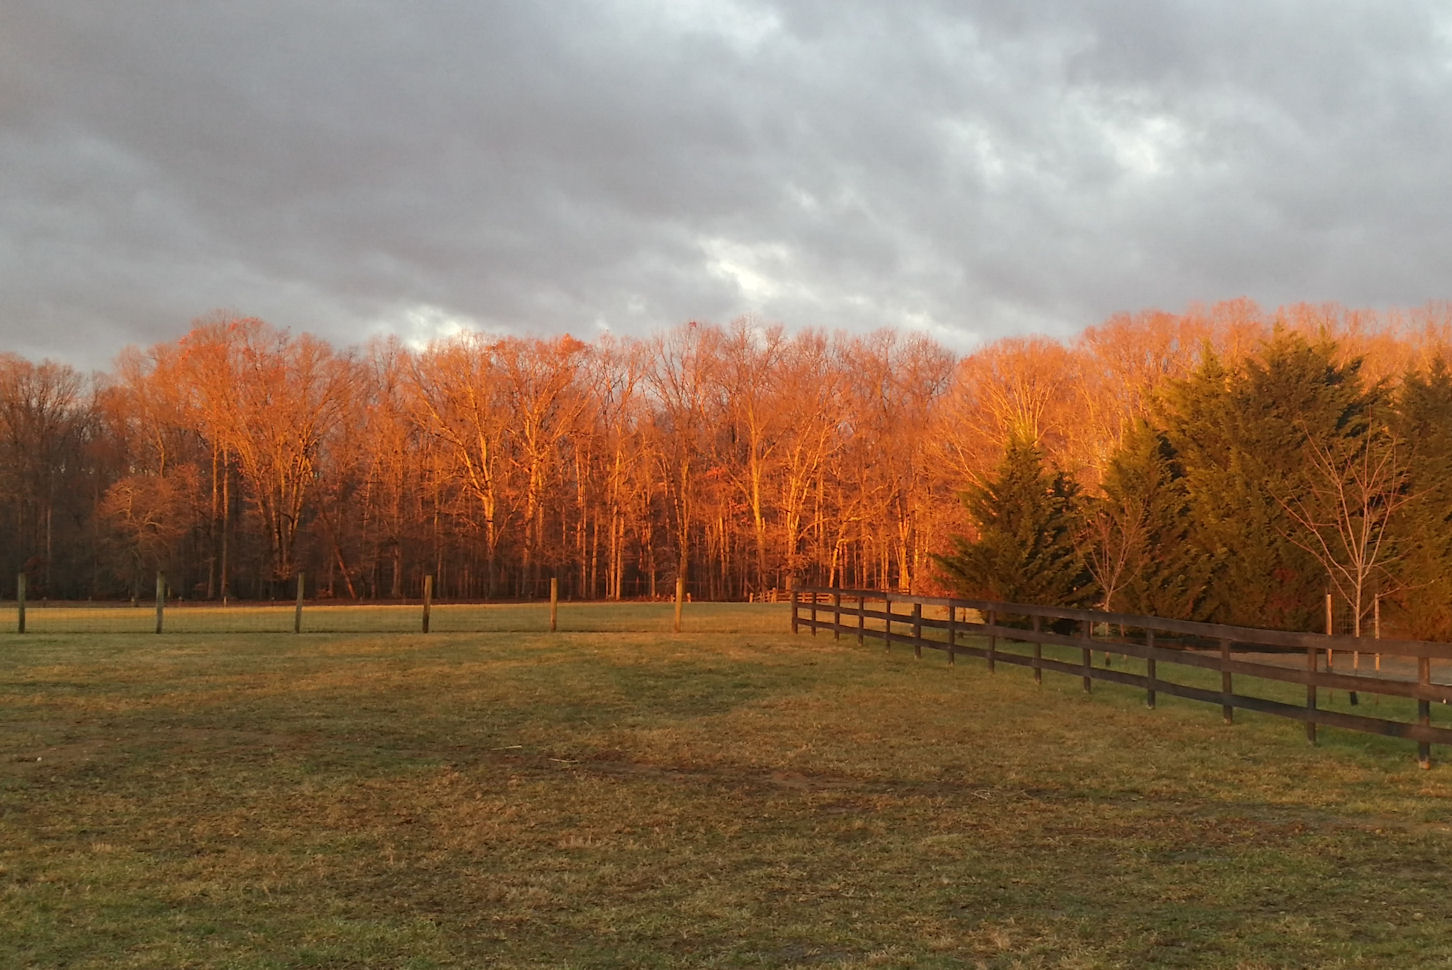 Treeline in the fall